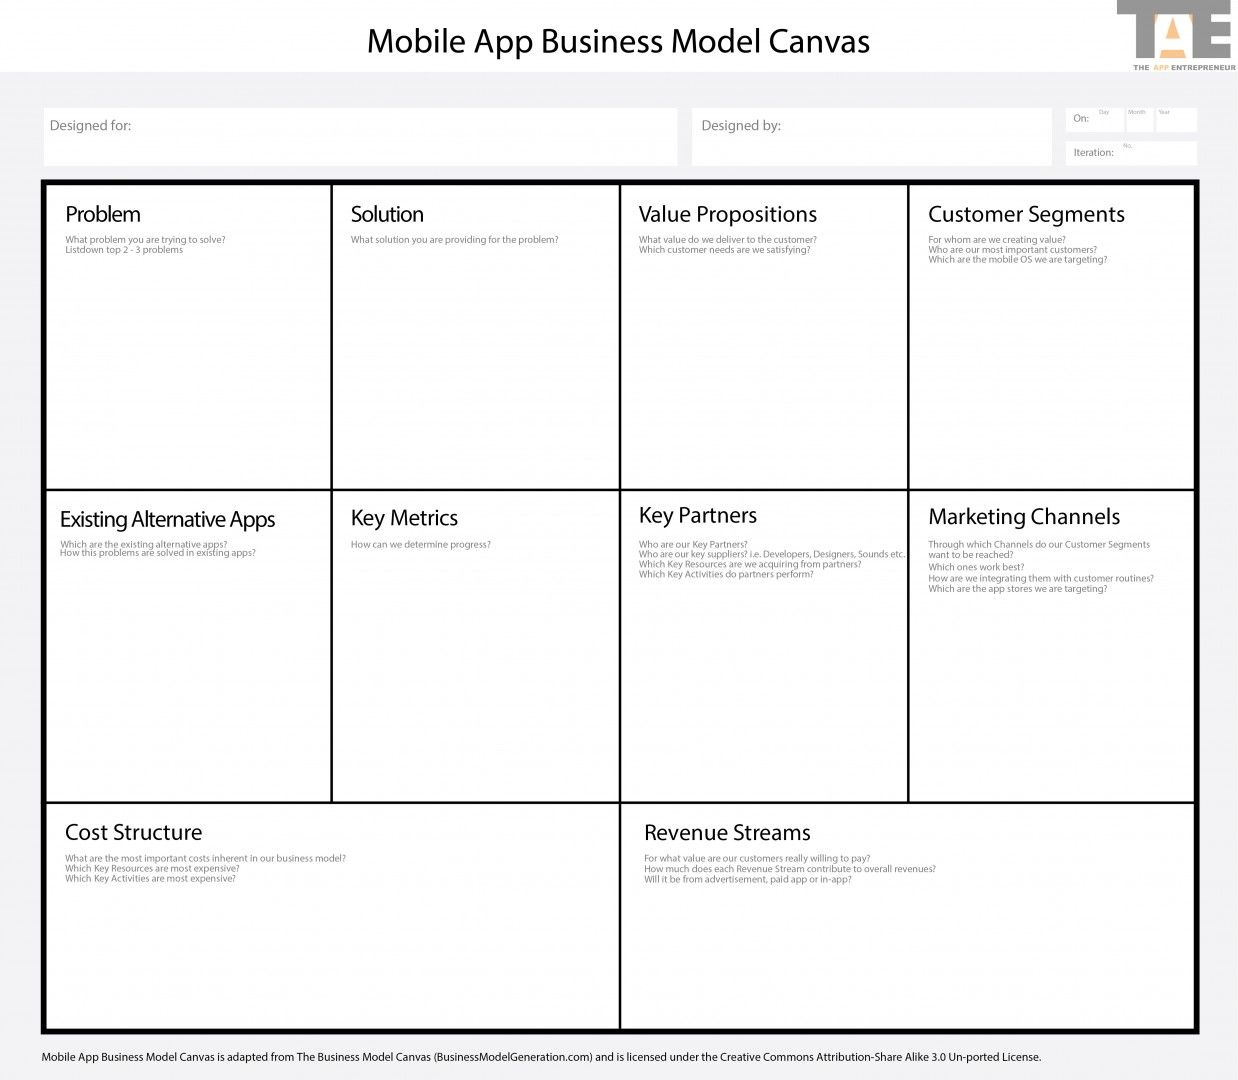 Mobile Application Business Model | App Business Model Canvas | The ...